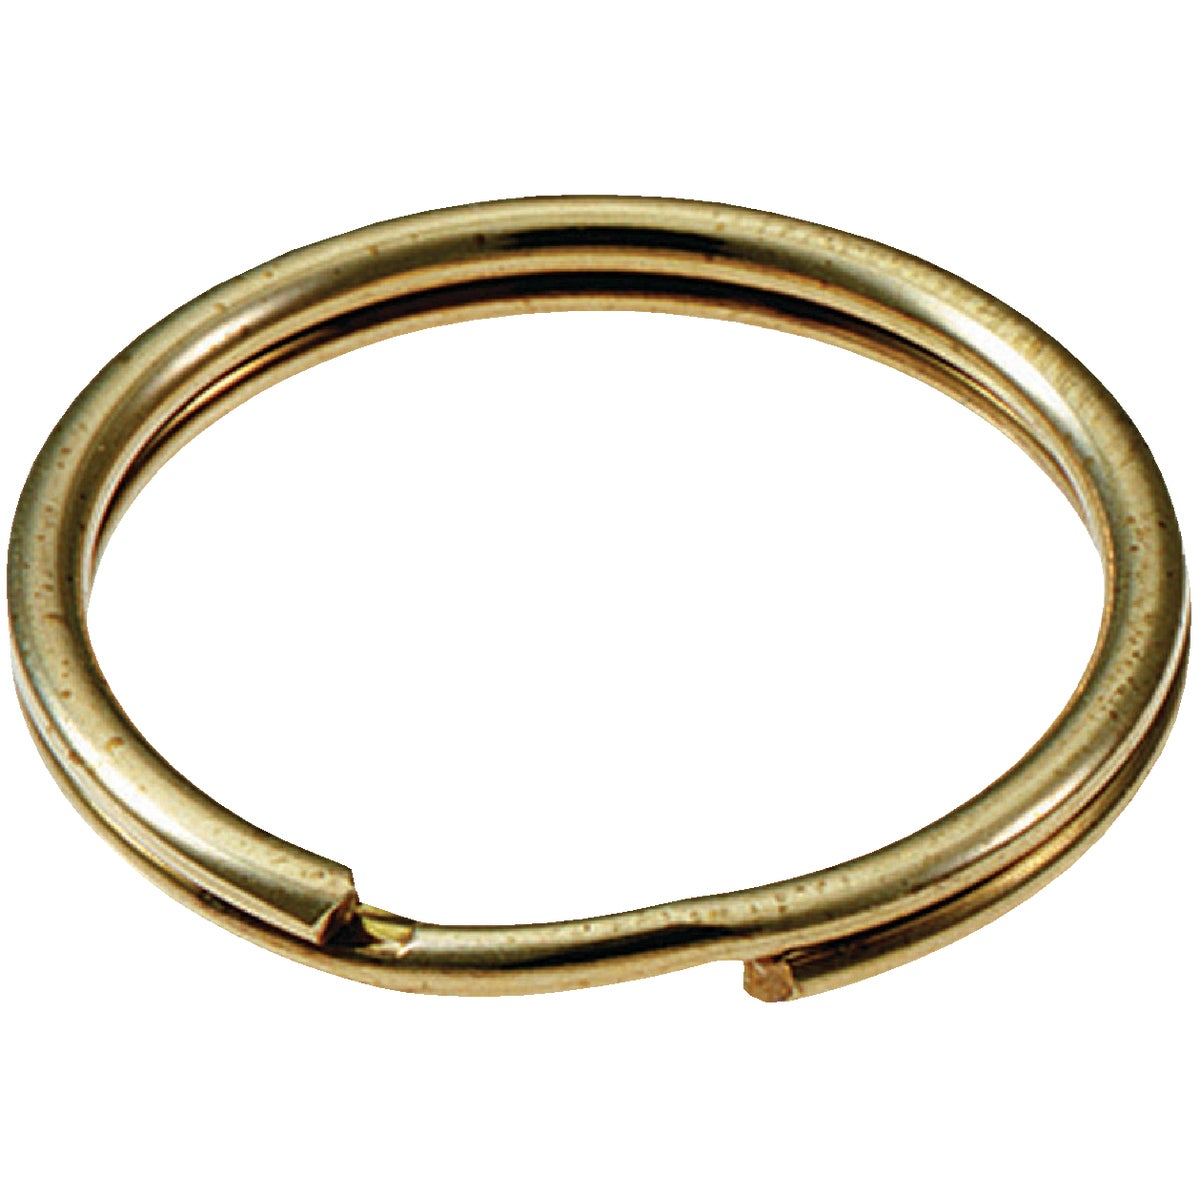 "1-1/2"" BRASS KEY RING - 77801 by Lucky Line Prod Inc"